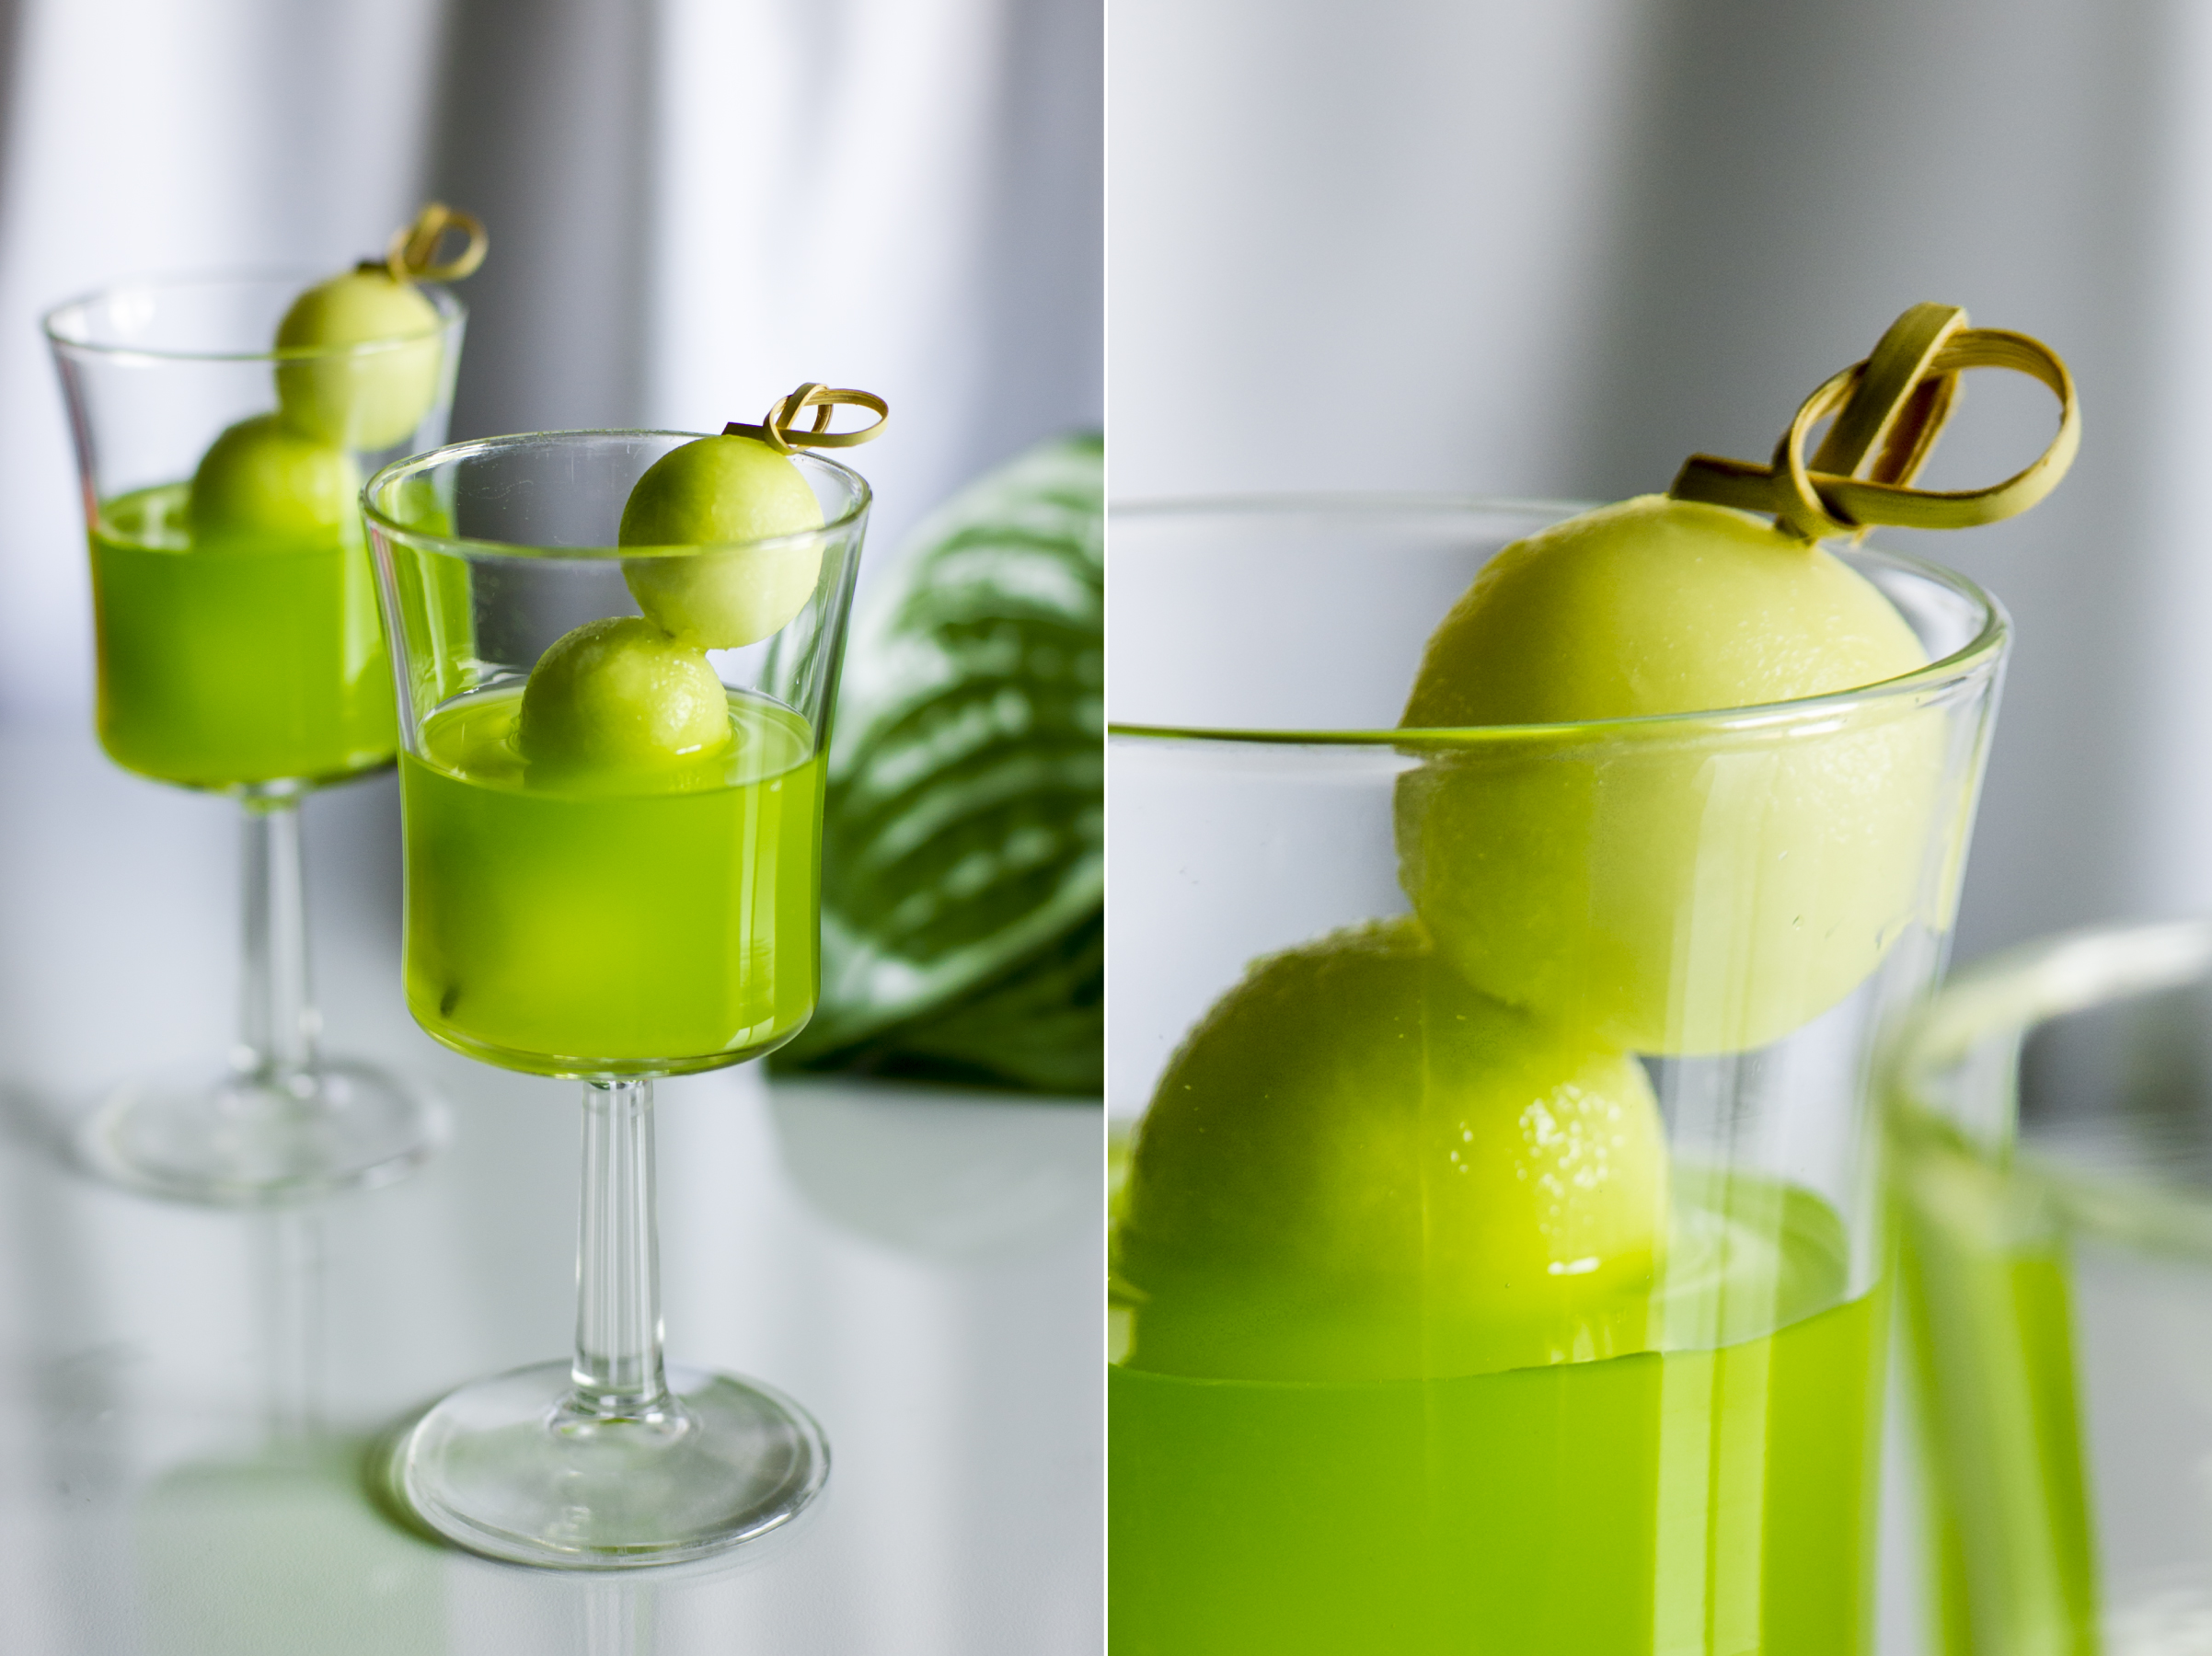 Melon Ball by Sam Henderson of Today's Nest